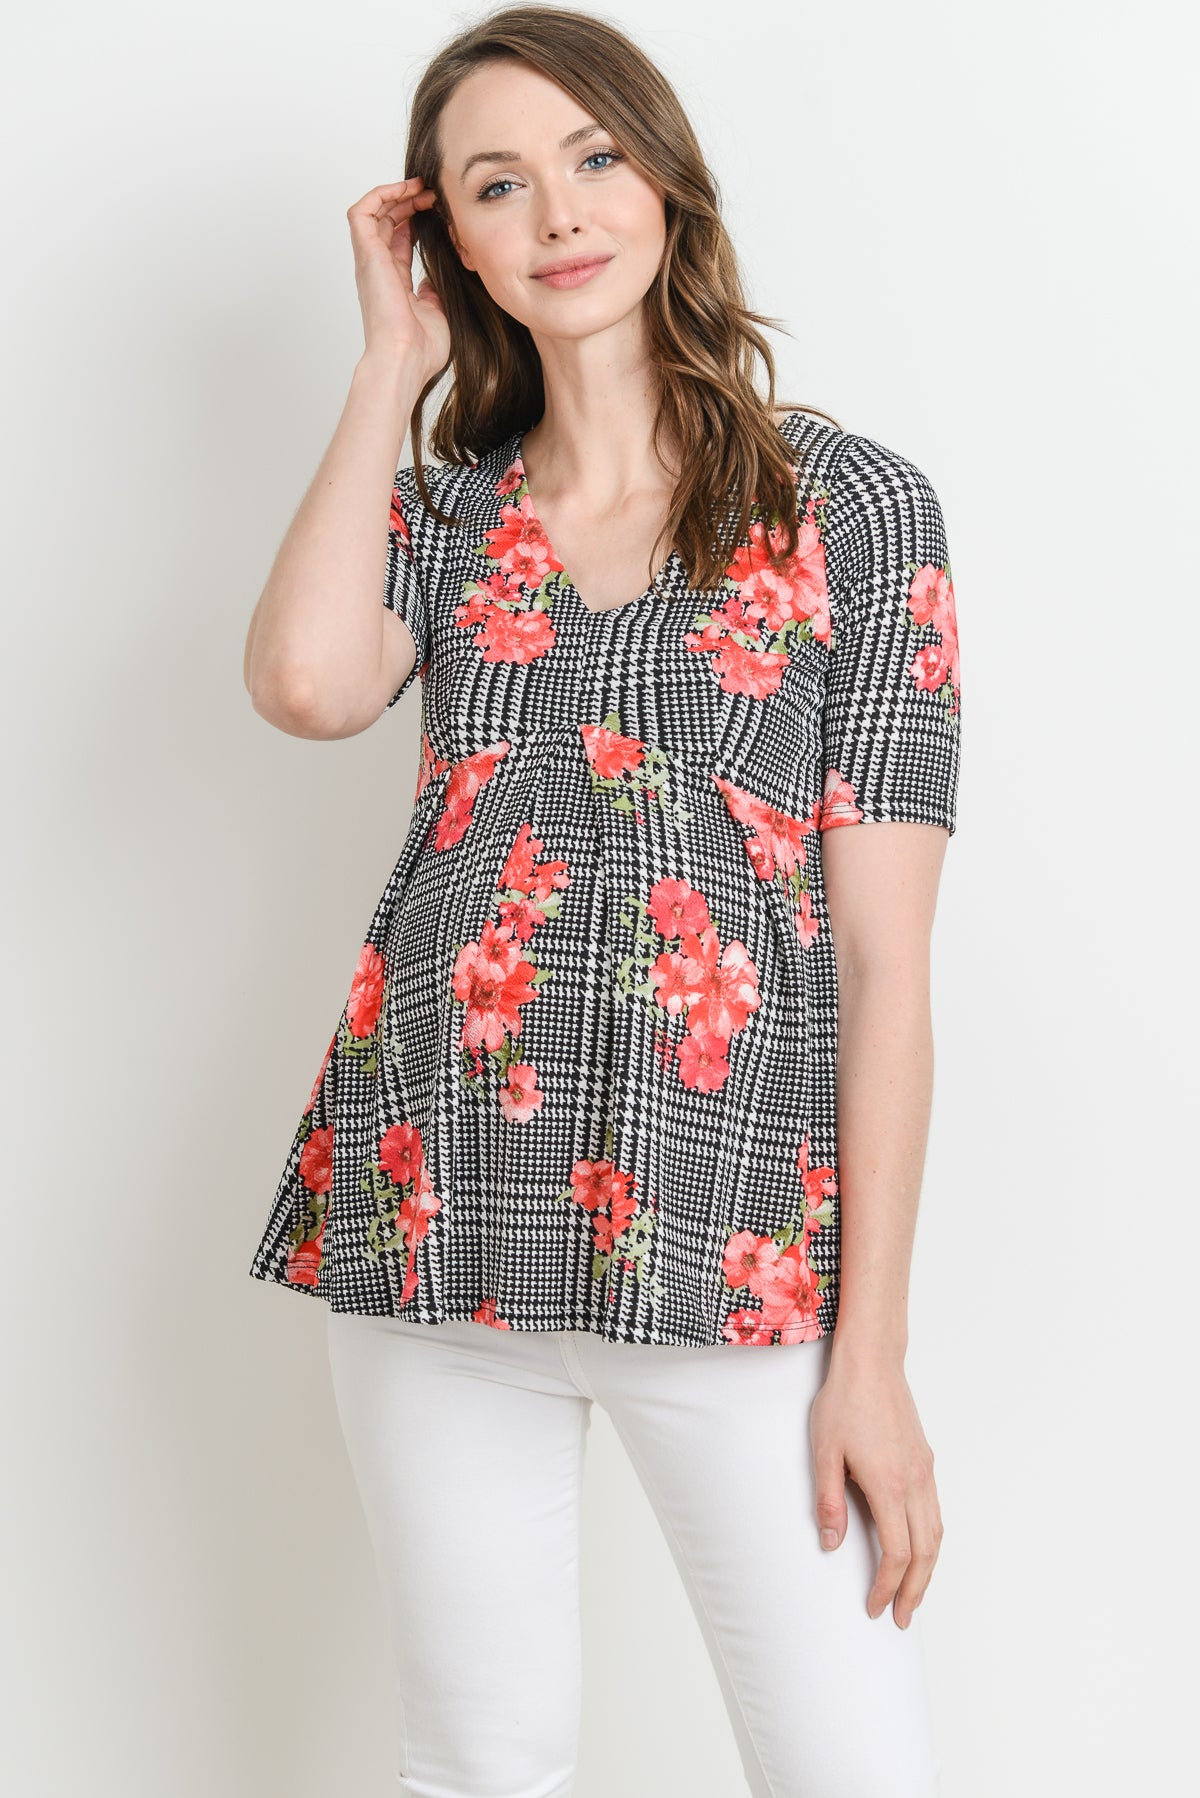 Striped Plaid Floral Peplum Maternity top